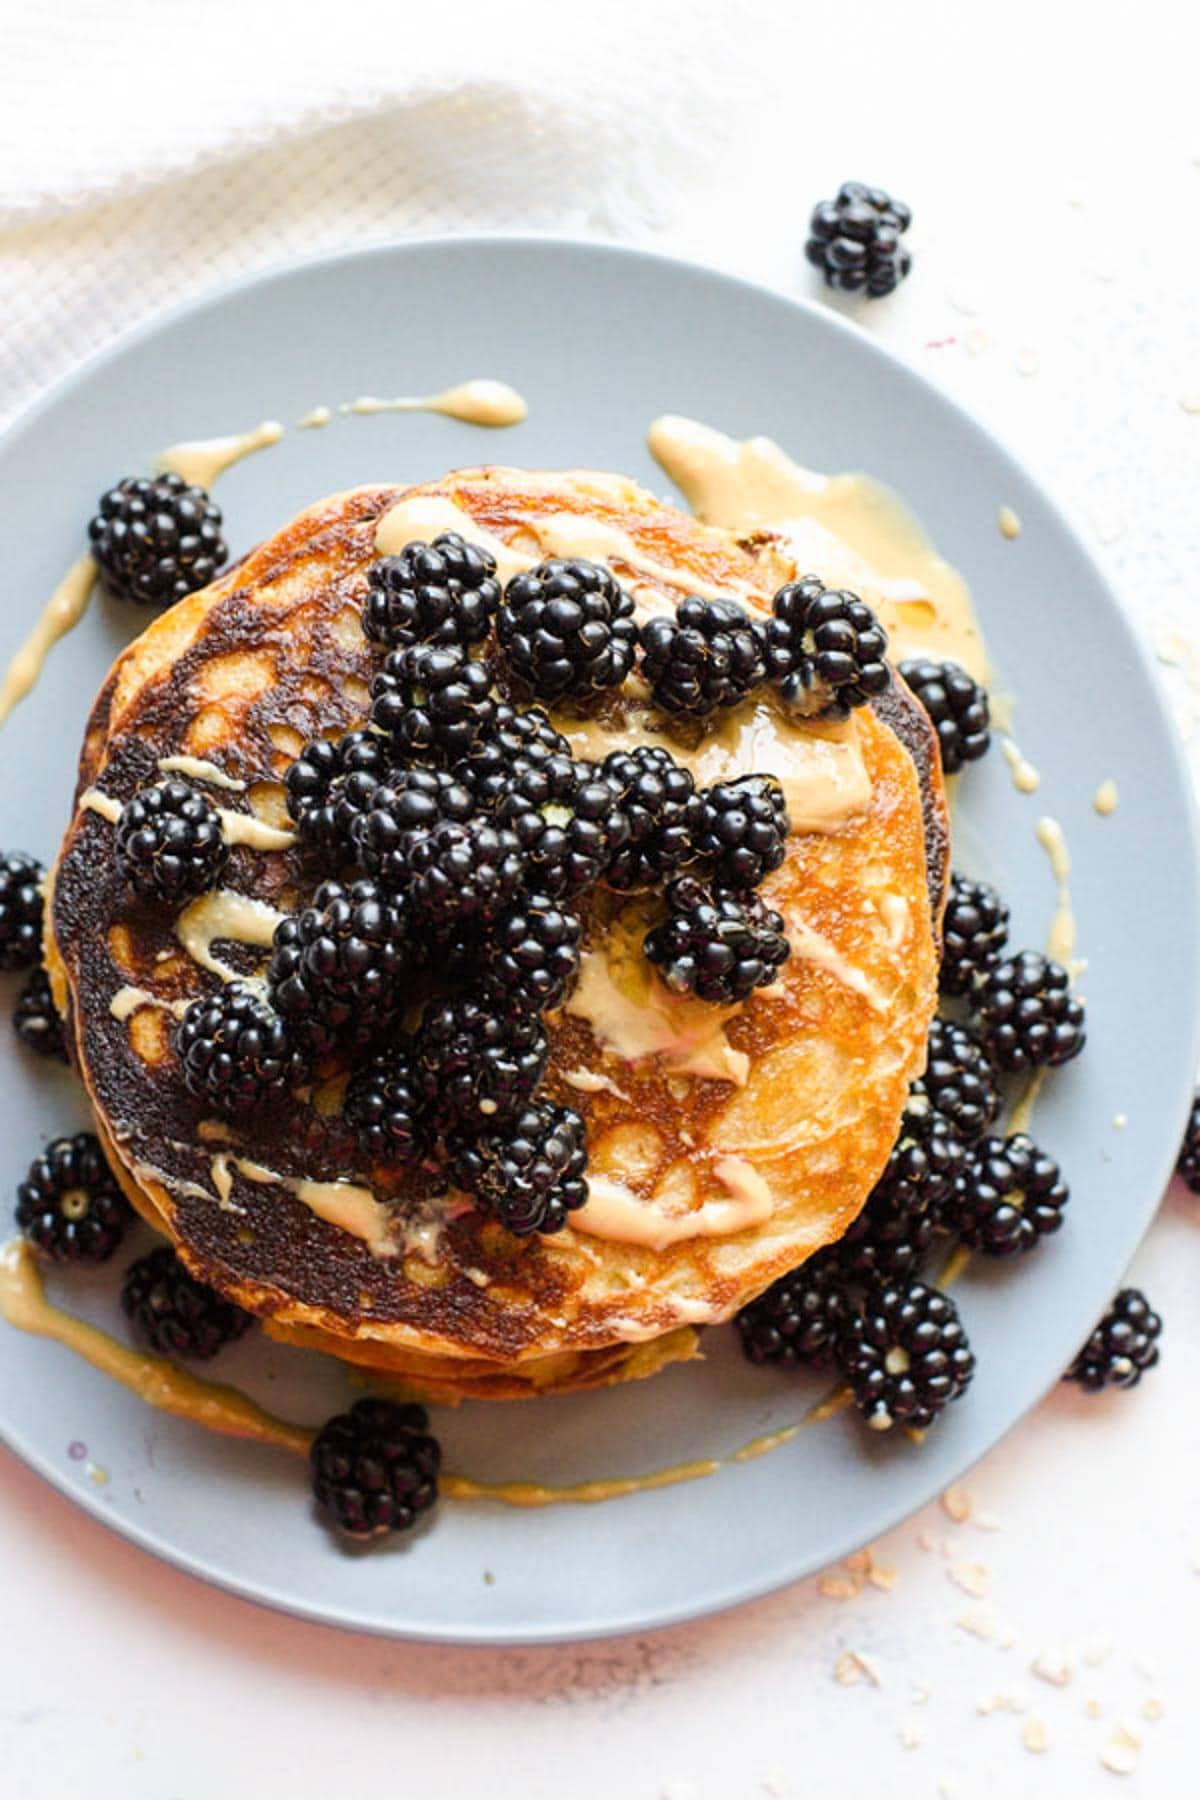 Peanut Butter Protein Pancakes - easy protein pancake recipe with banana, oatmeal and plant based protein powder. | ifoodreal.com